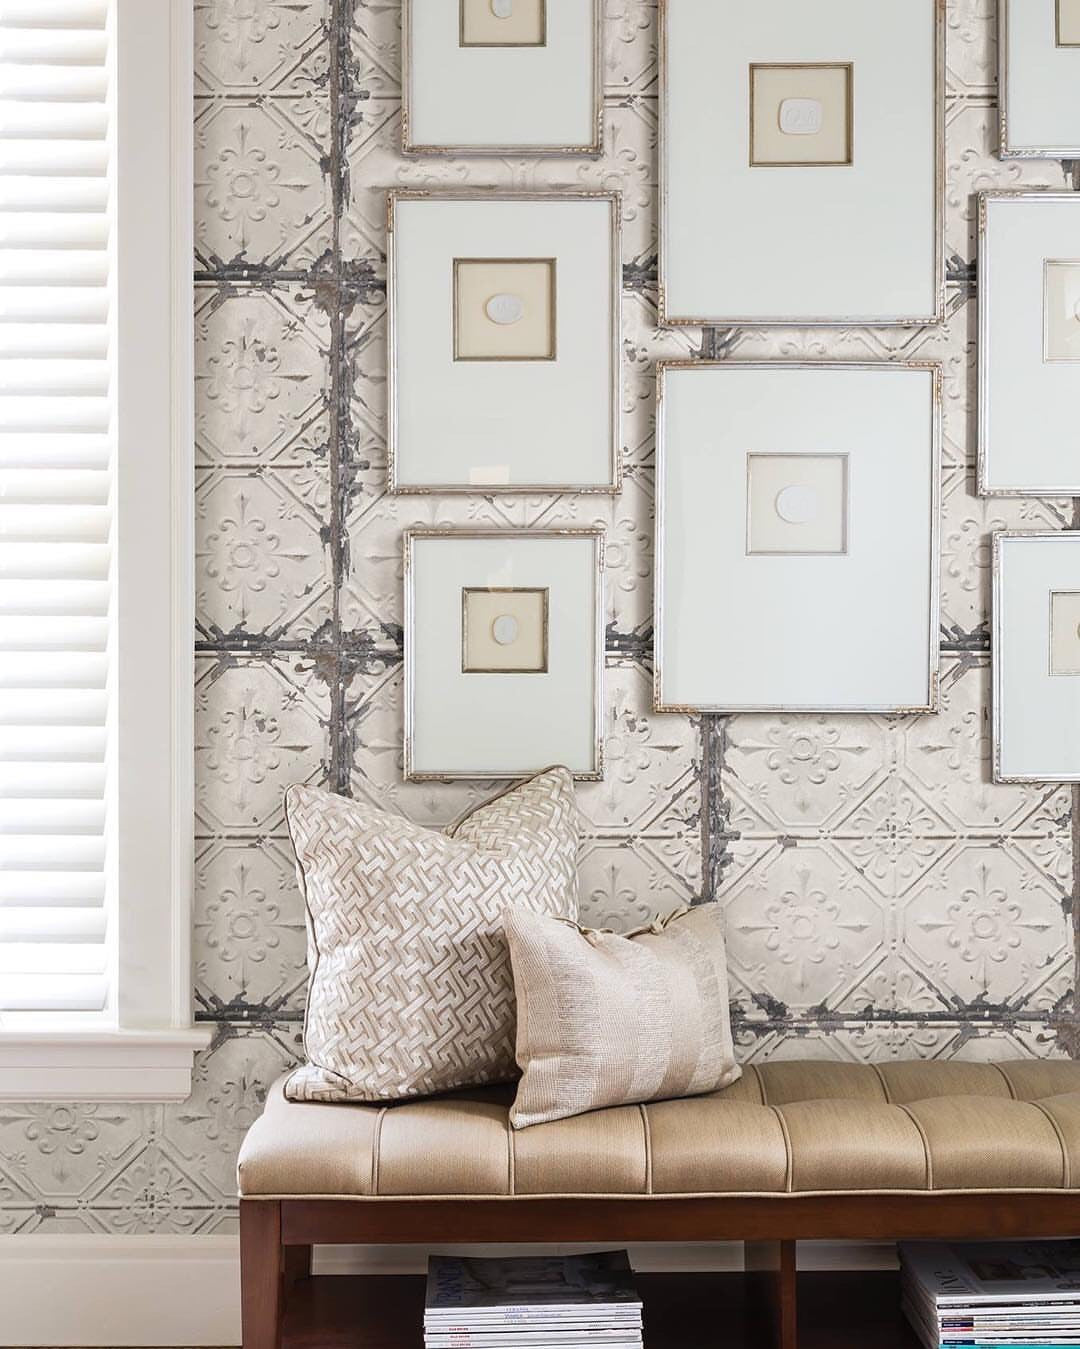 Brewster a street prints reclaimed distressed 3d tin ceiling tiles brewster a street prints reclaimed distressed 3d tin ceiling tiles wallpaper dailygadgetfo Image collections